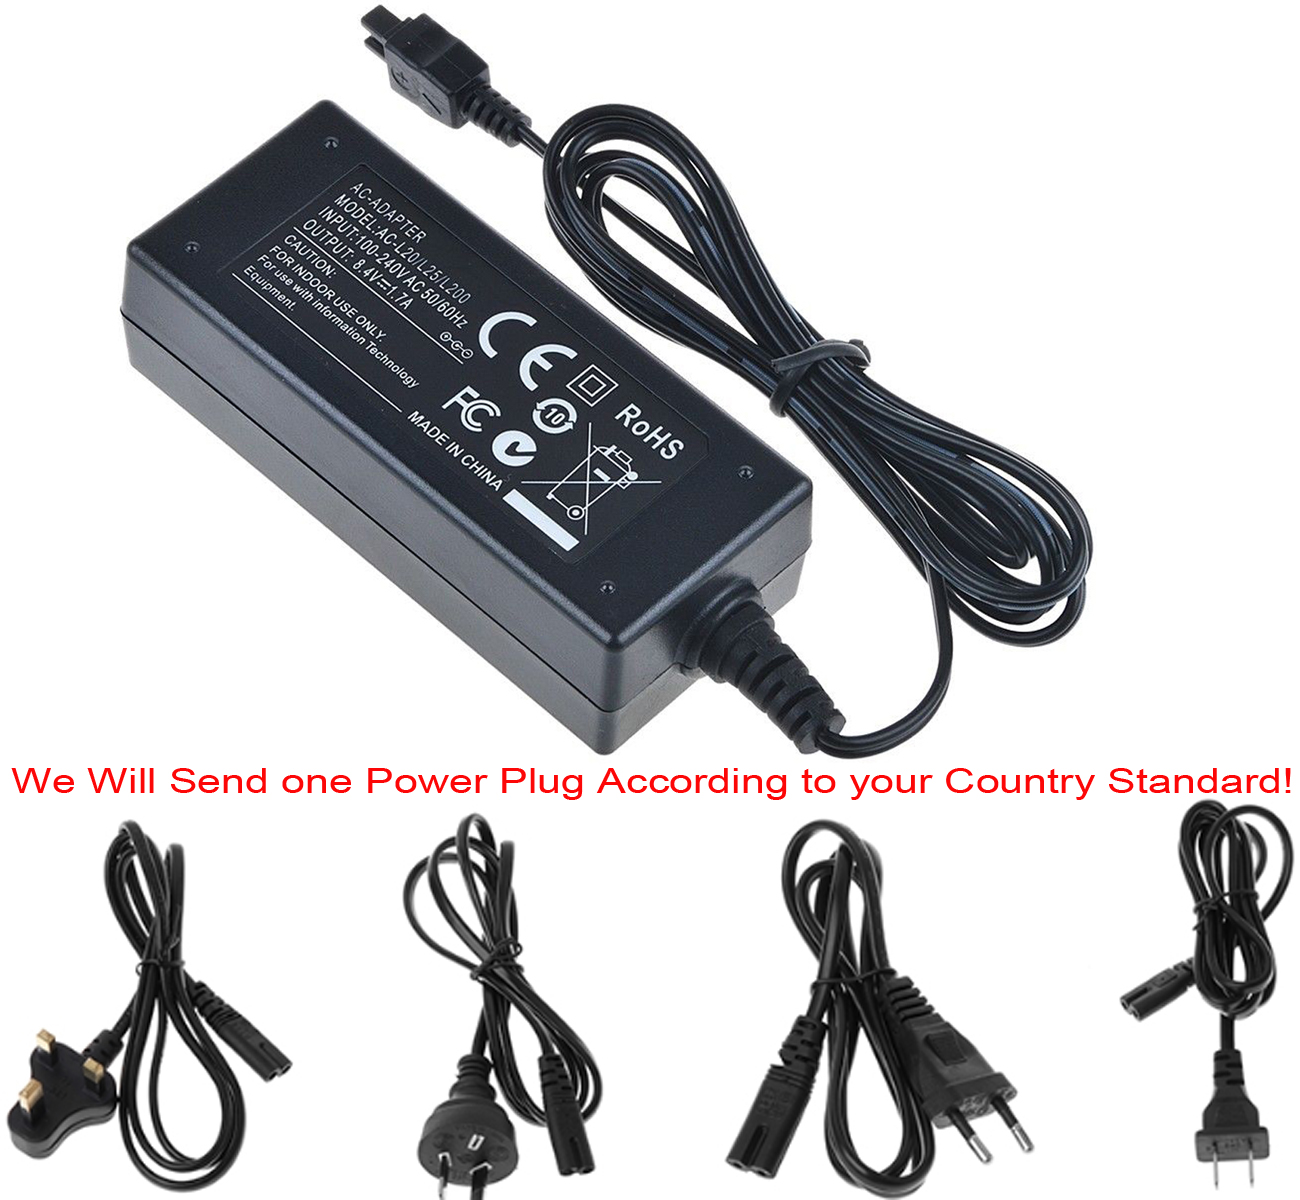 HDR-CX390 Handycam Camcorder USB LCD Display Battery Charger for Sony HDR-CX350V HDR-CX360V HDR-CX380 HDR-CX370V